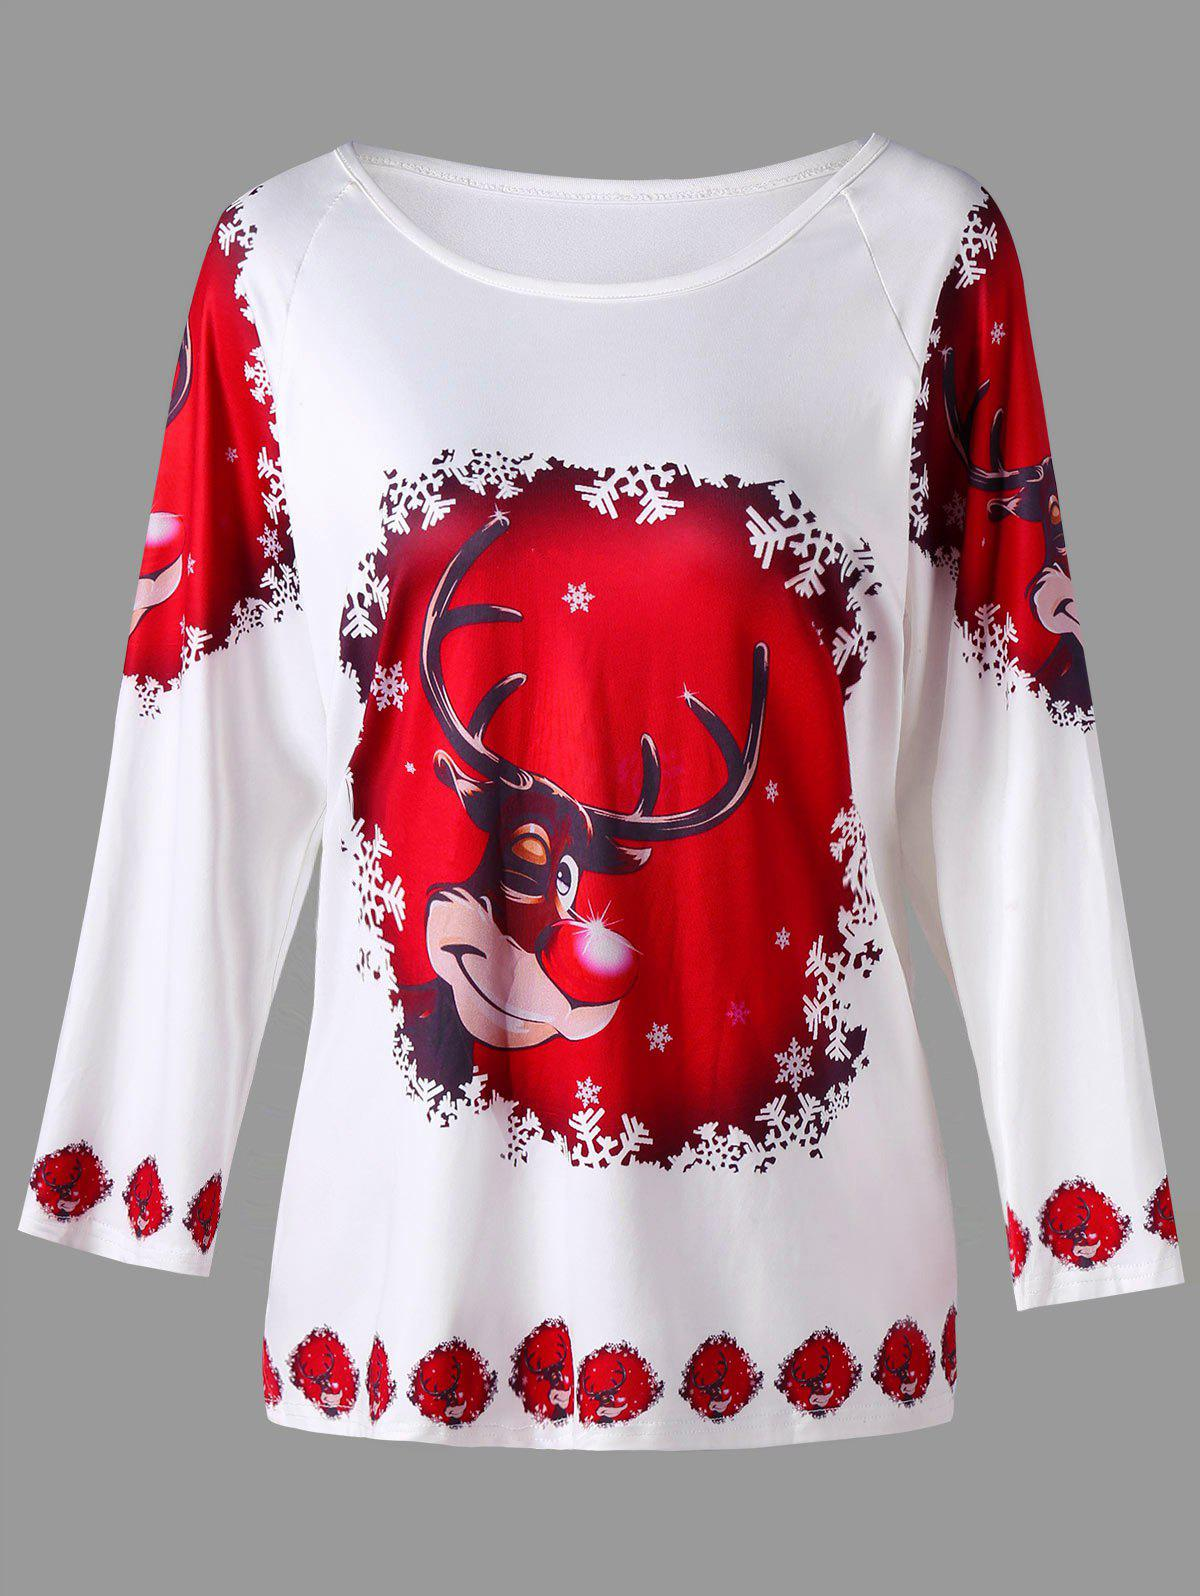 Plus Size Cartoon Deer Print Raglan Sleeve TopWOMEN<br><br>Size: 3XL; Color: WHITE; Material: Cotton,Polyester; Shirt Length: Regular; Sleeve Length: Full; Collar: Scoop Neck; Style: Casual; Season: Fall,Spring; Pattern Type: Character; Weight: 0.4000kg; Package Contents: 1 x T-shirt;